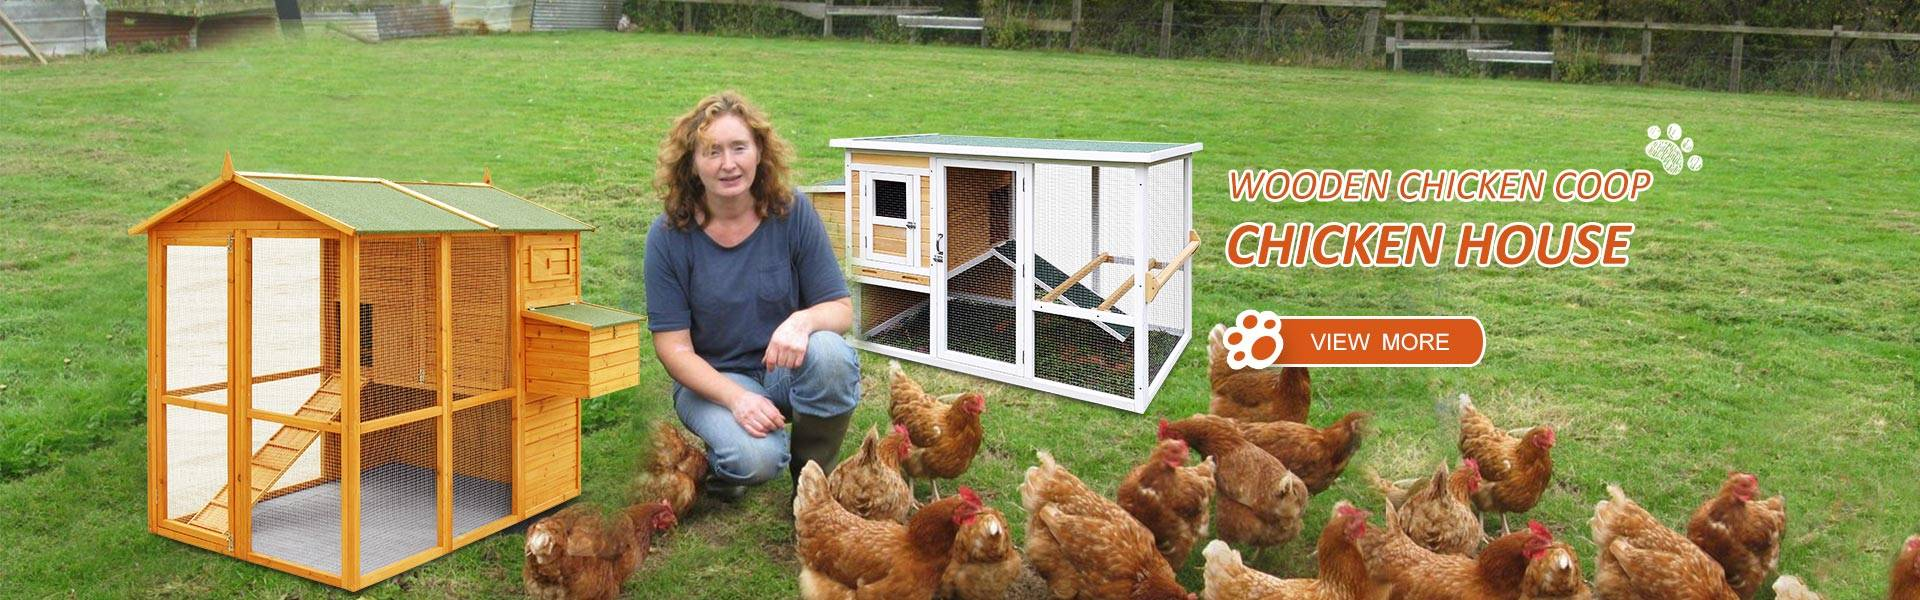 Wooden Chicken coop/ chicken house